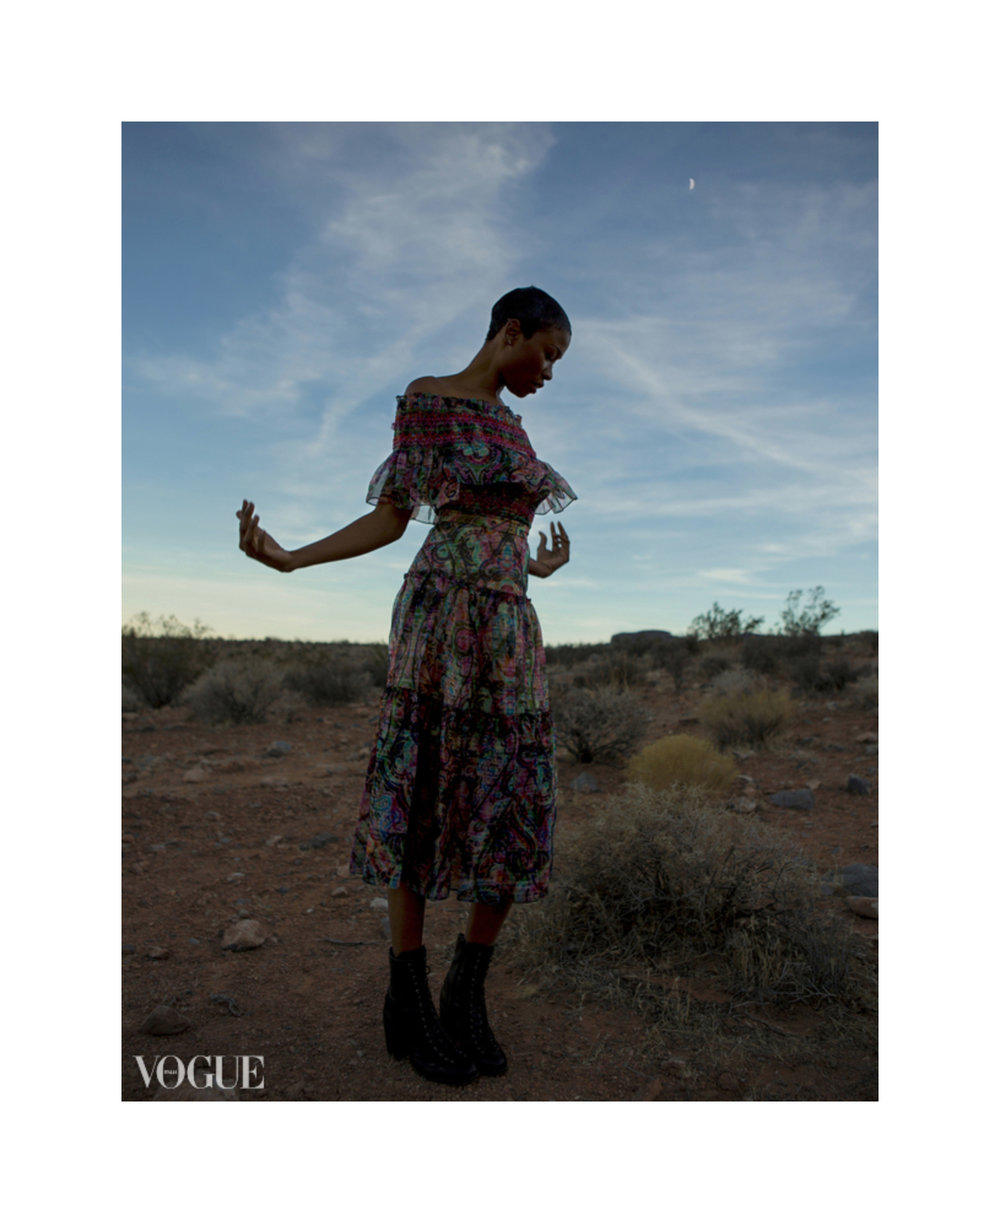 screencapture-vogue-it-photovogue-portfolio-1515524650346w.jpg